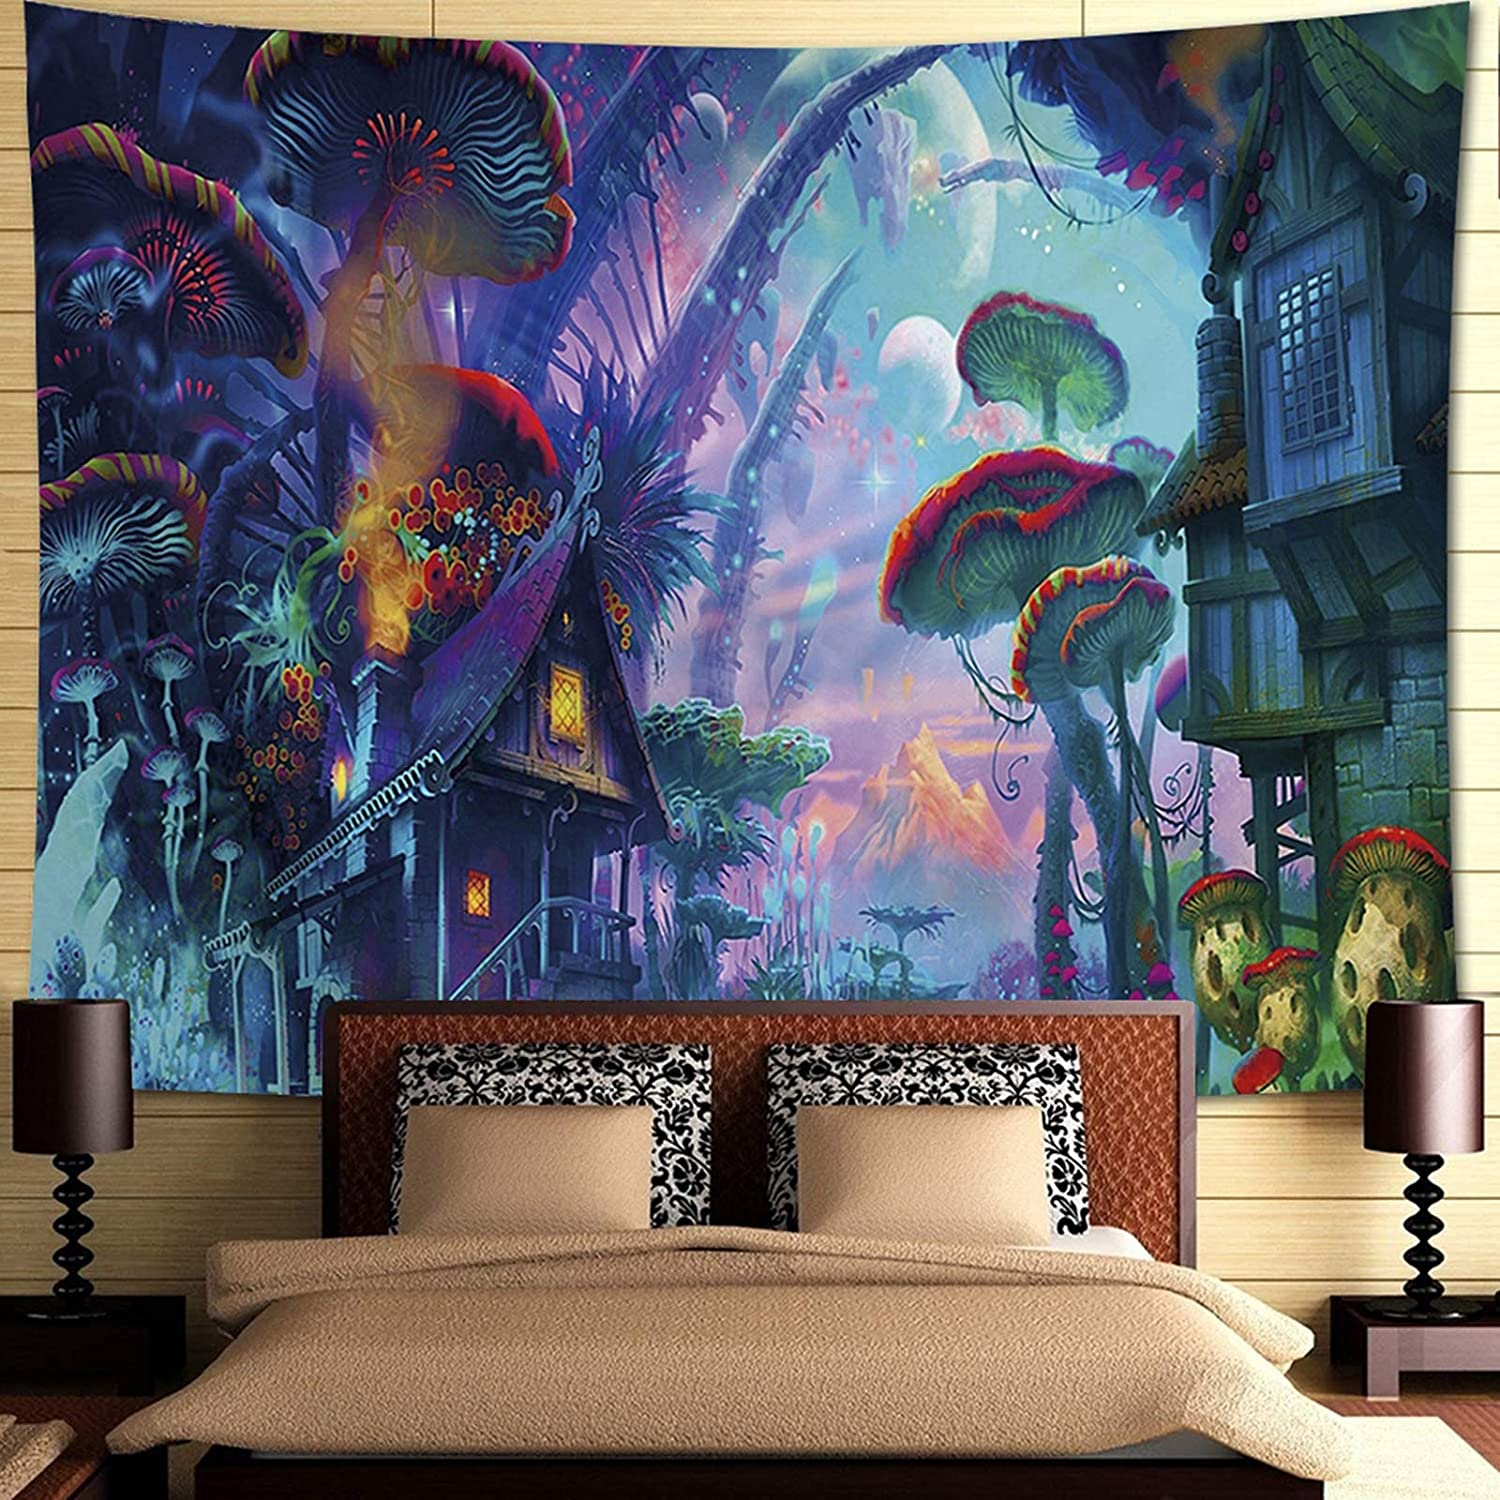 INTHouse Psychedelic Forest Tapestry Wall Hanging Magic Land Tapestry Wall Decor for Bedroom College Dorm Room